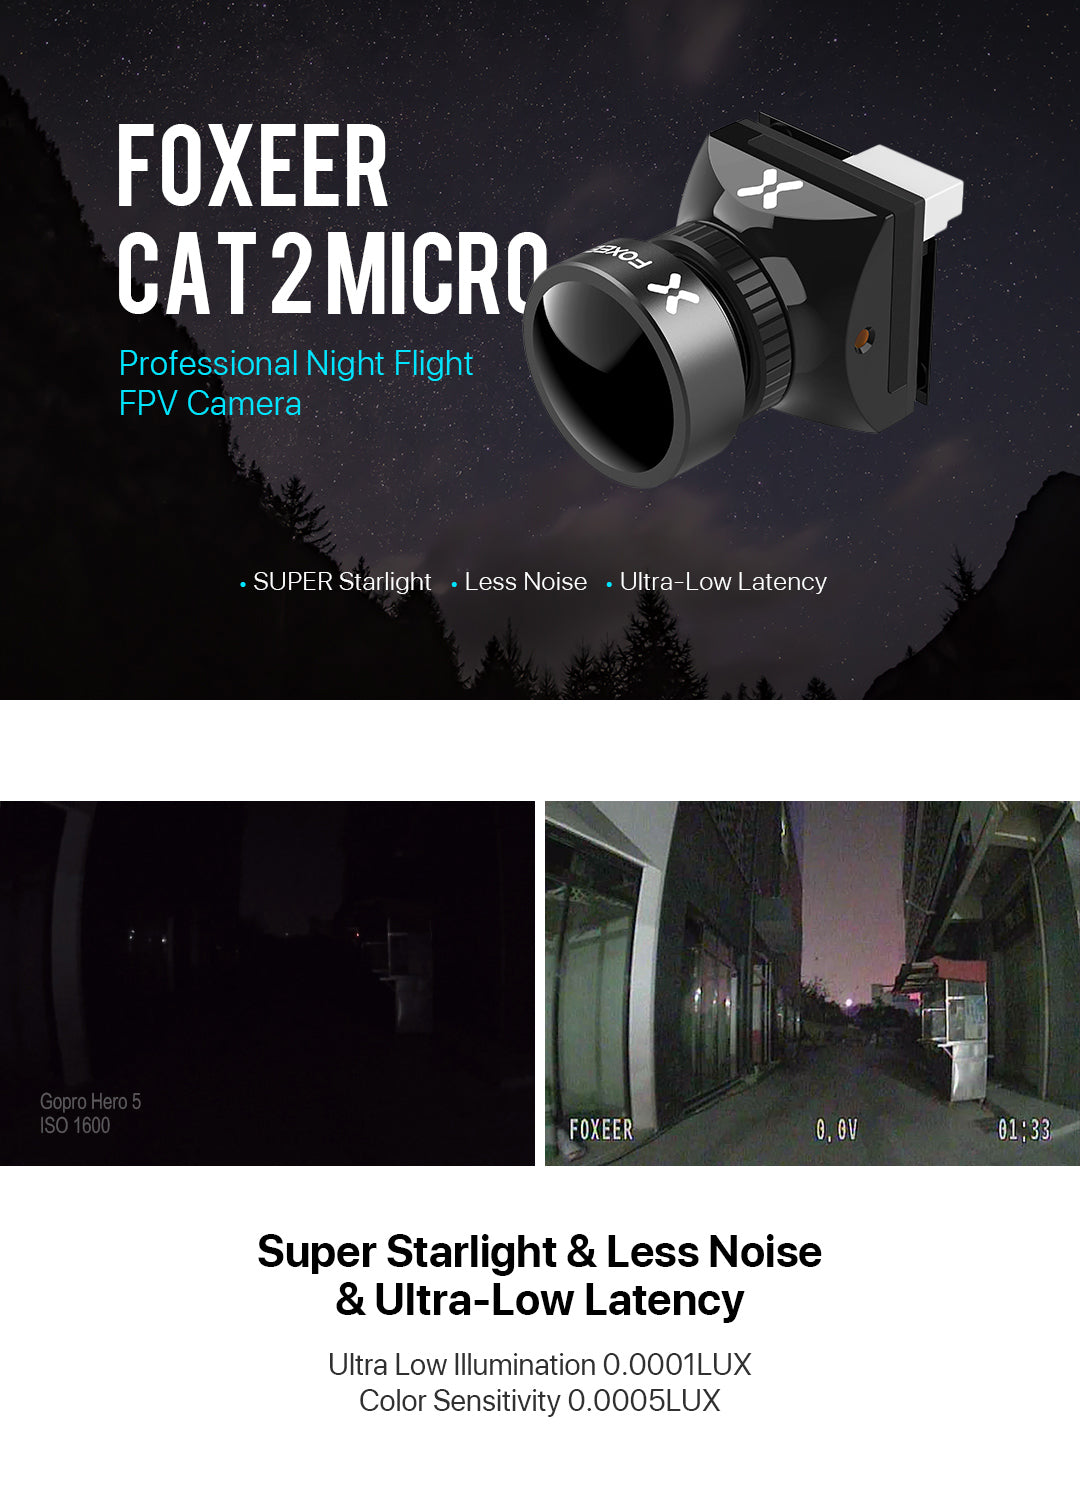 Foxeer Cat 2 Mini Super Starlight FPV Camera